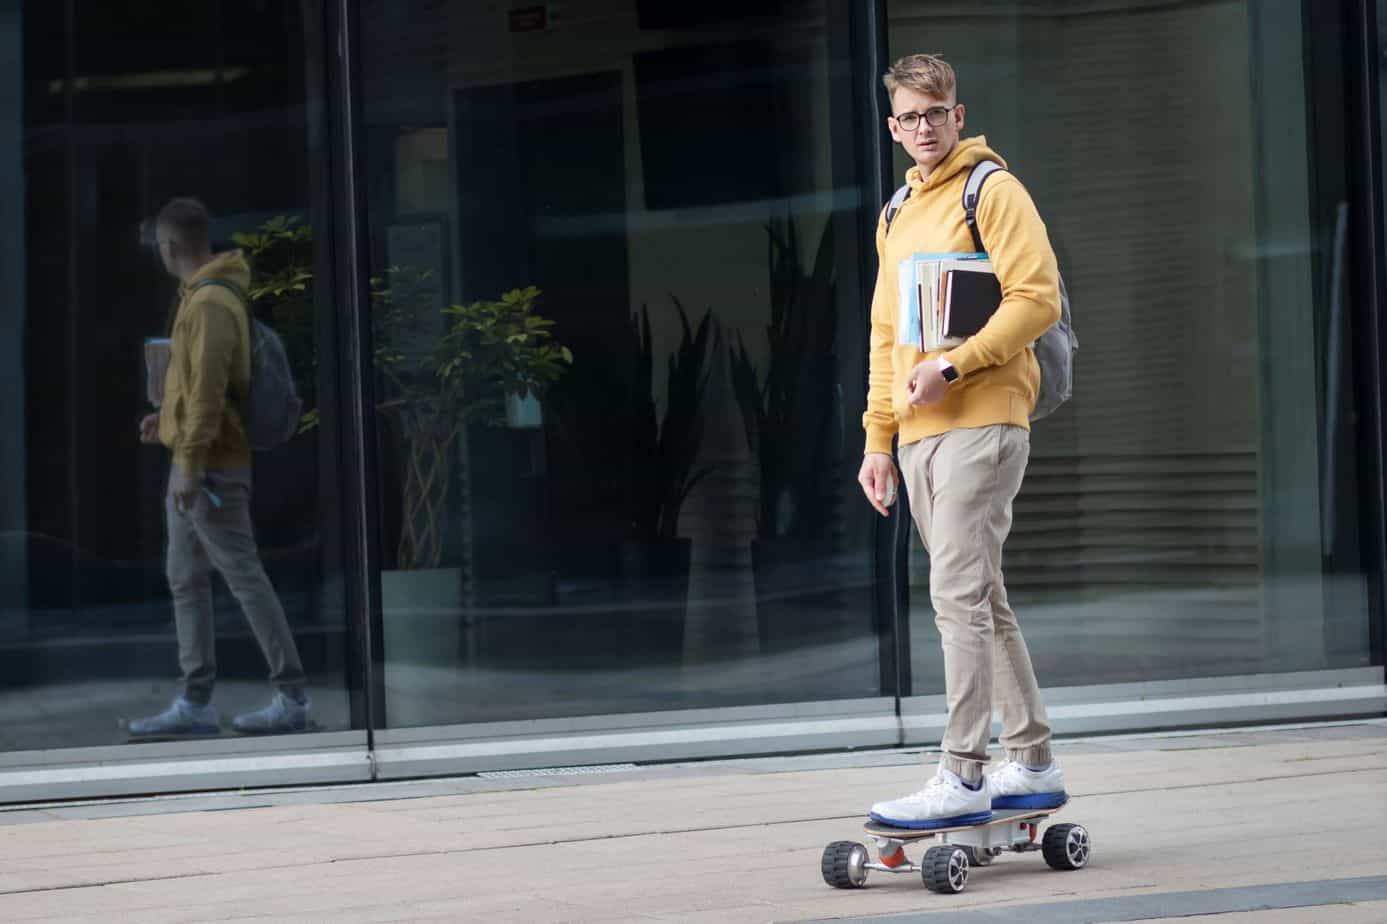 are electric skateboards legal in nyc